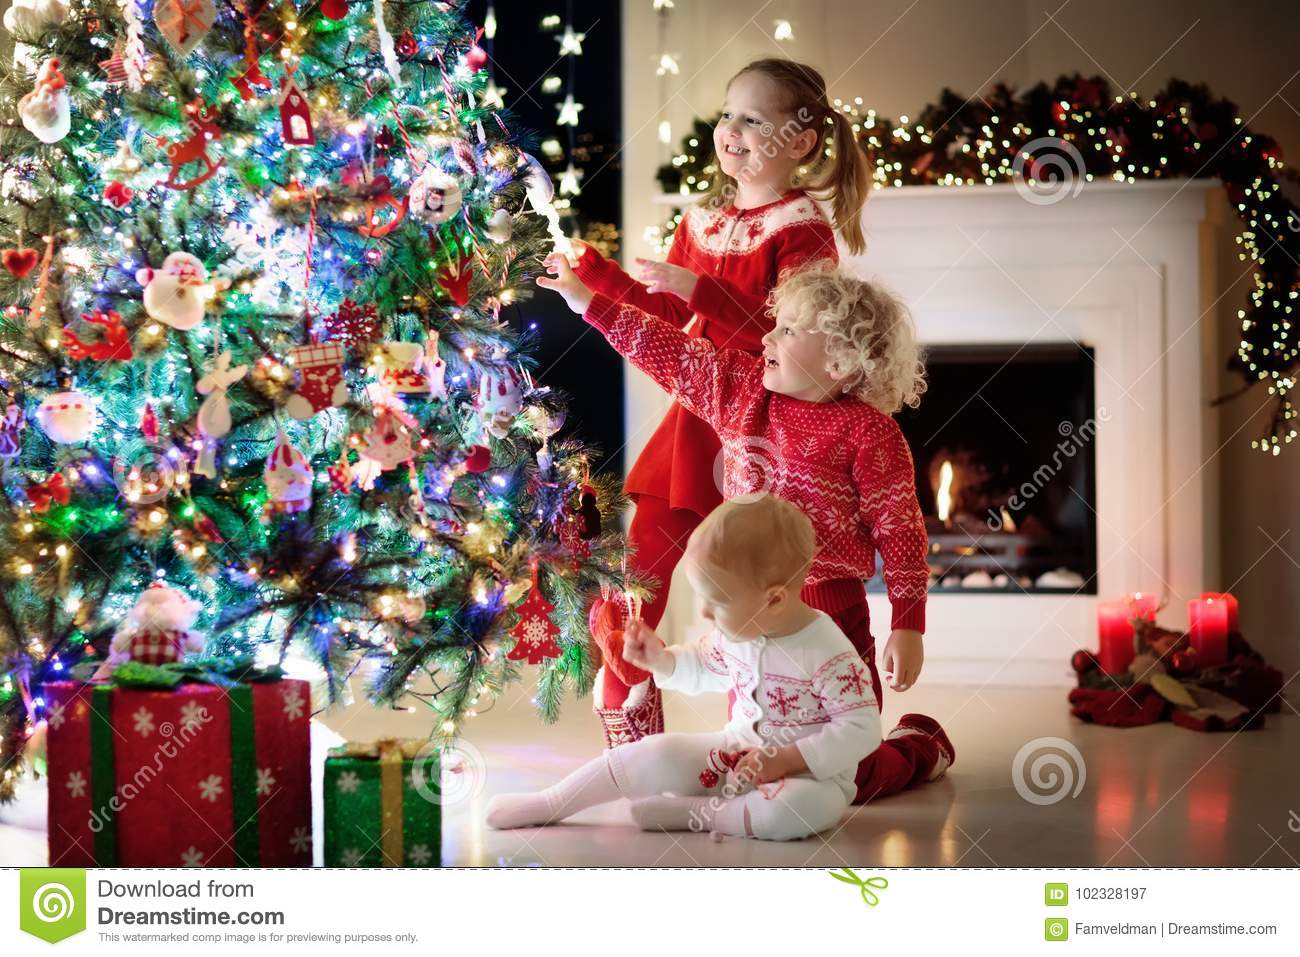 23 836 Christmas Tree Kids Photos Free Royalty Free Stock Photos From Dreamstime